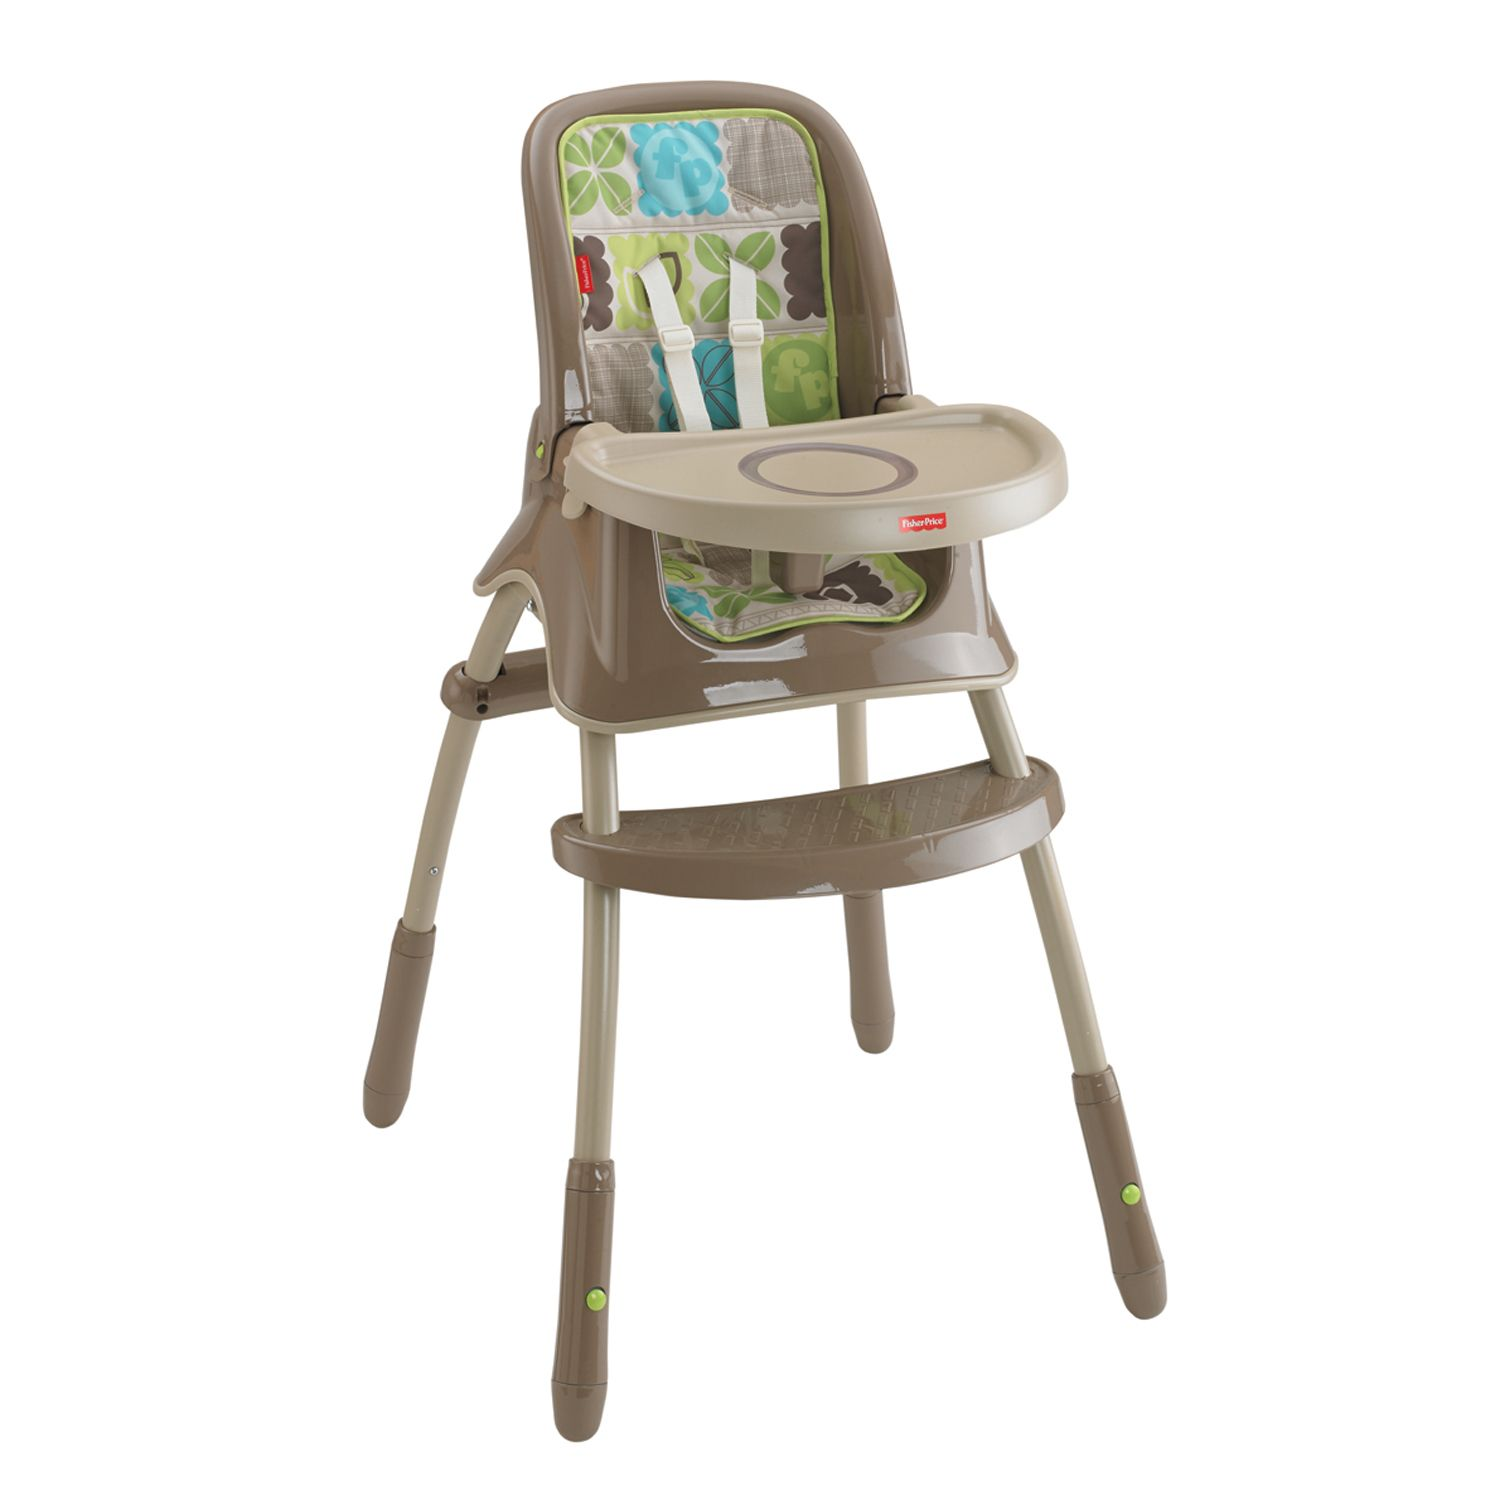 FisherPrice GrowWithMe High Chair